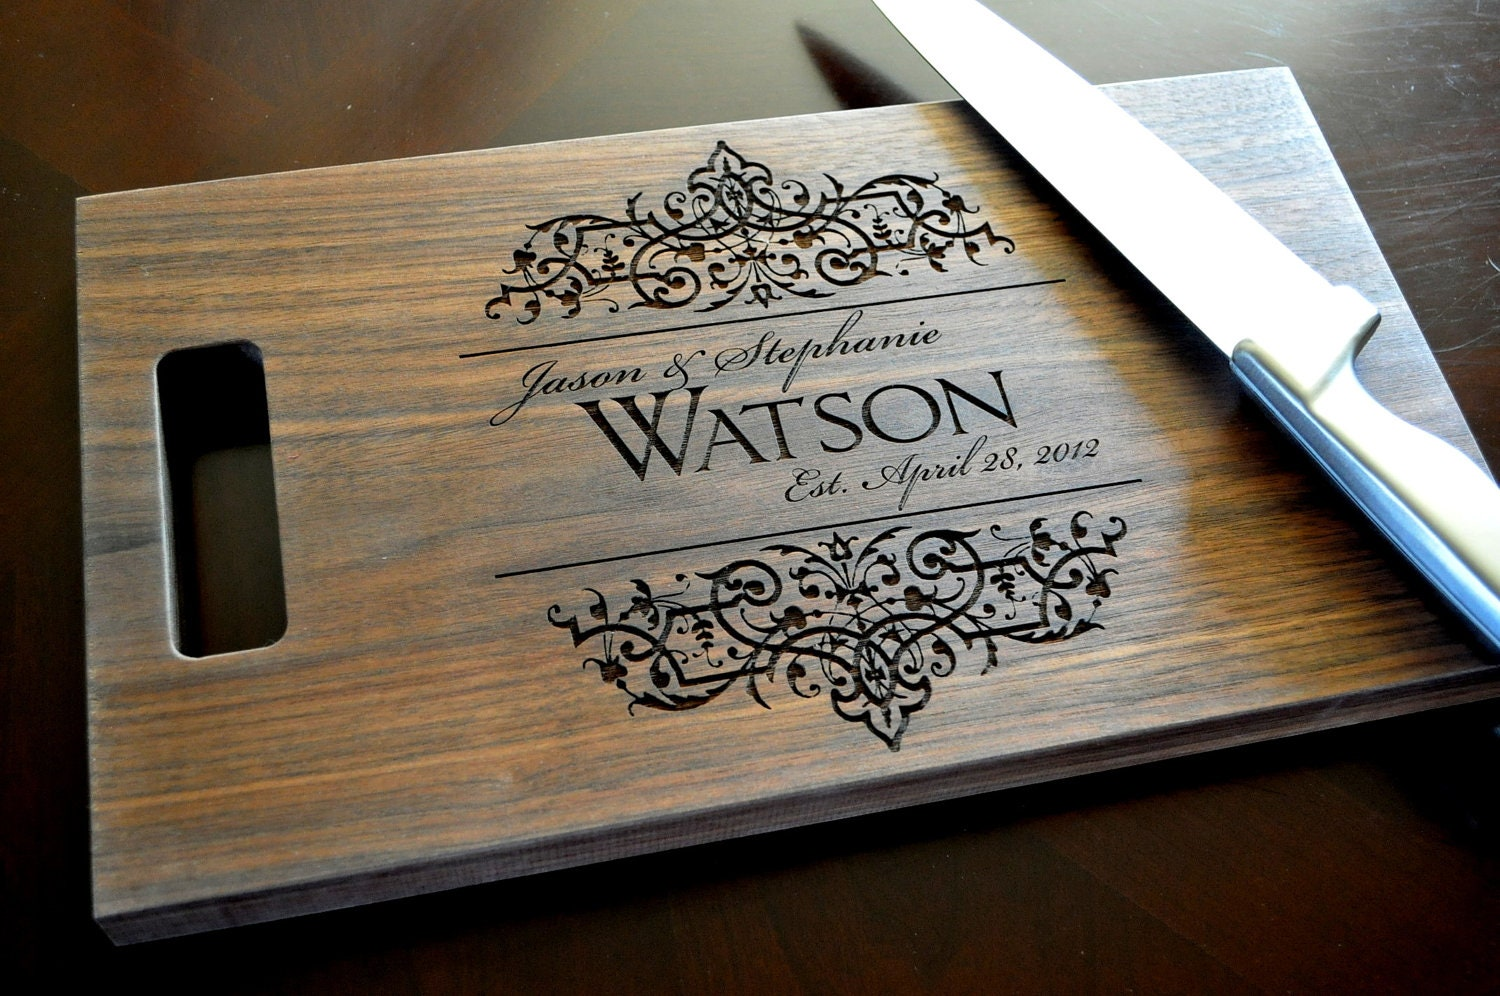 engraved cutting board personalized cutting board laser engraved 11x15 wood cutting 29633